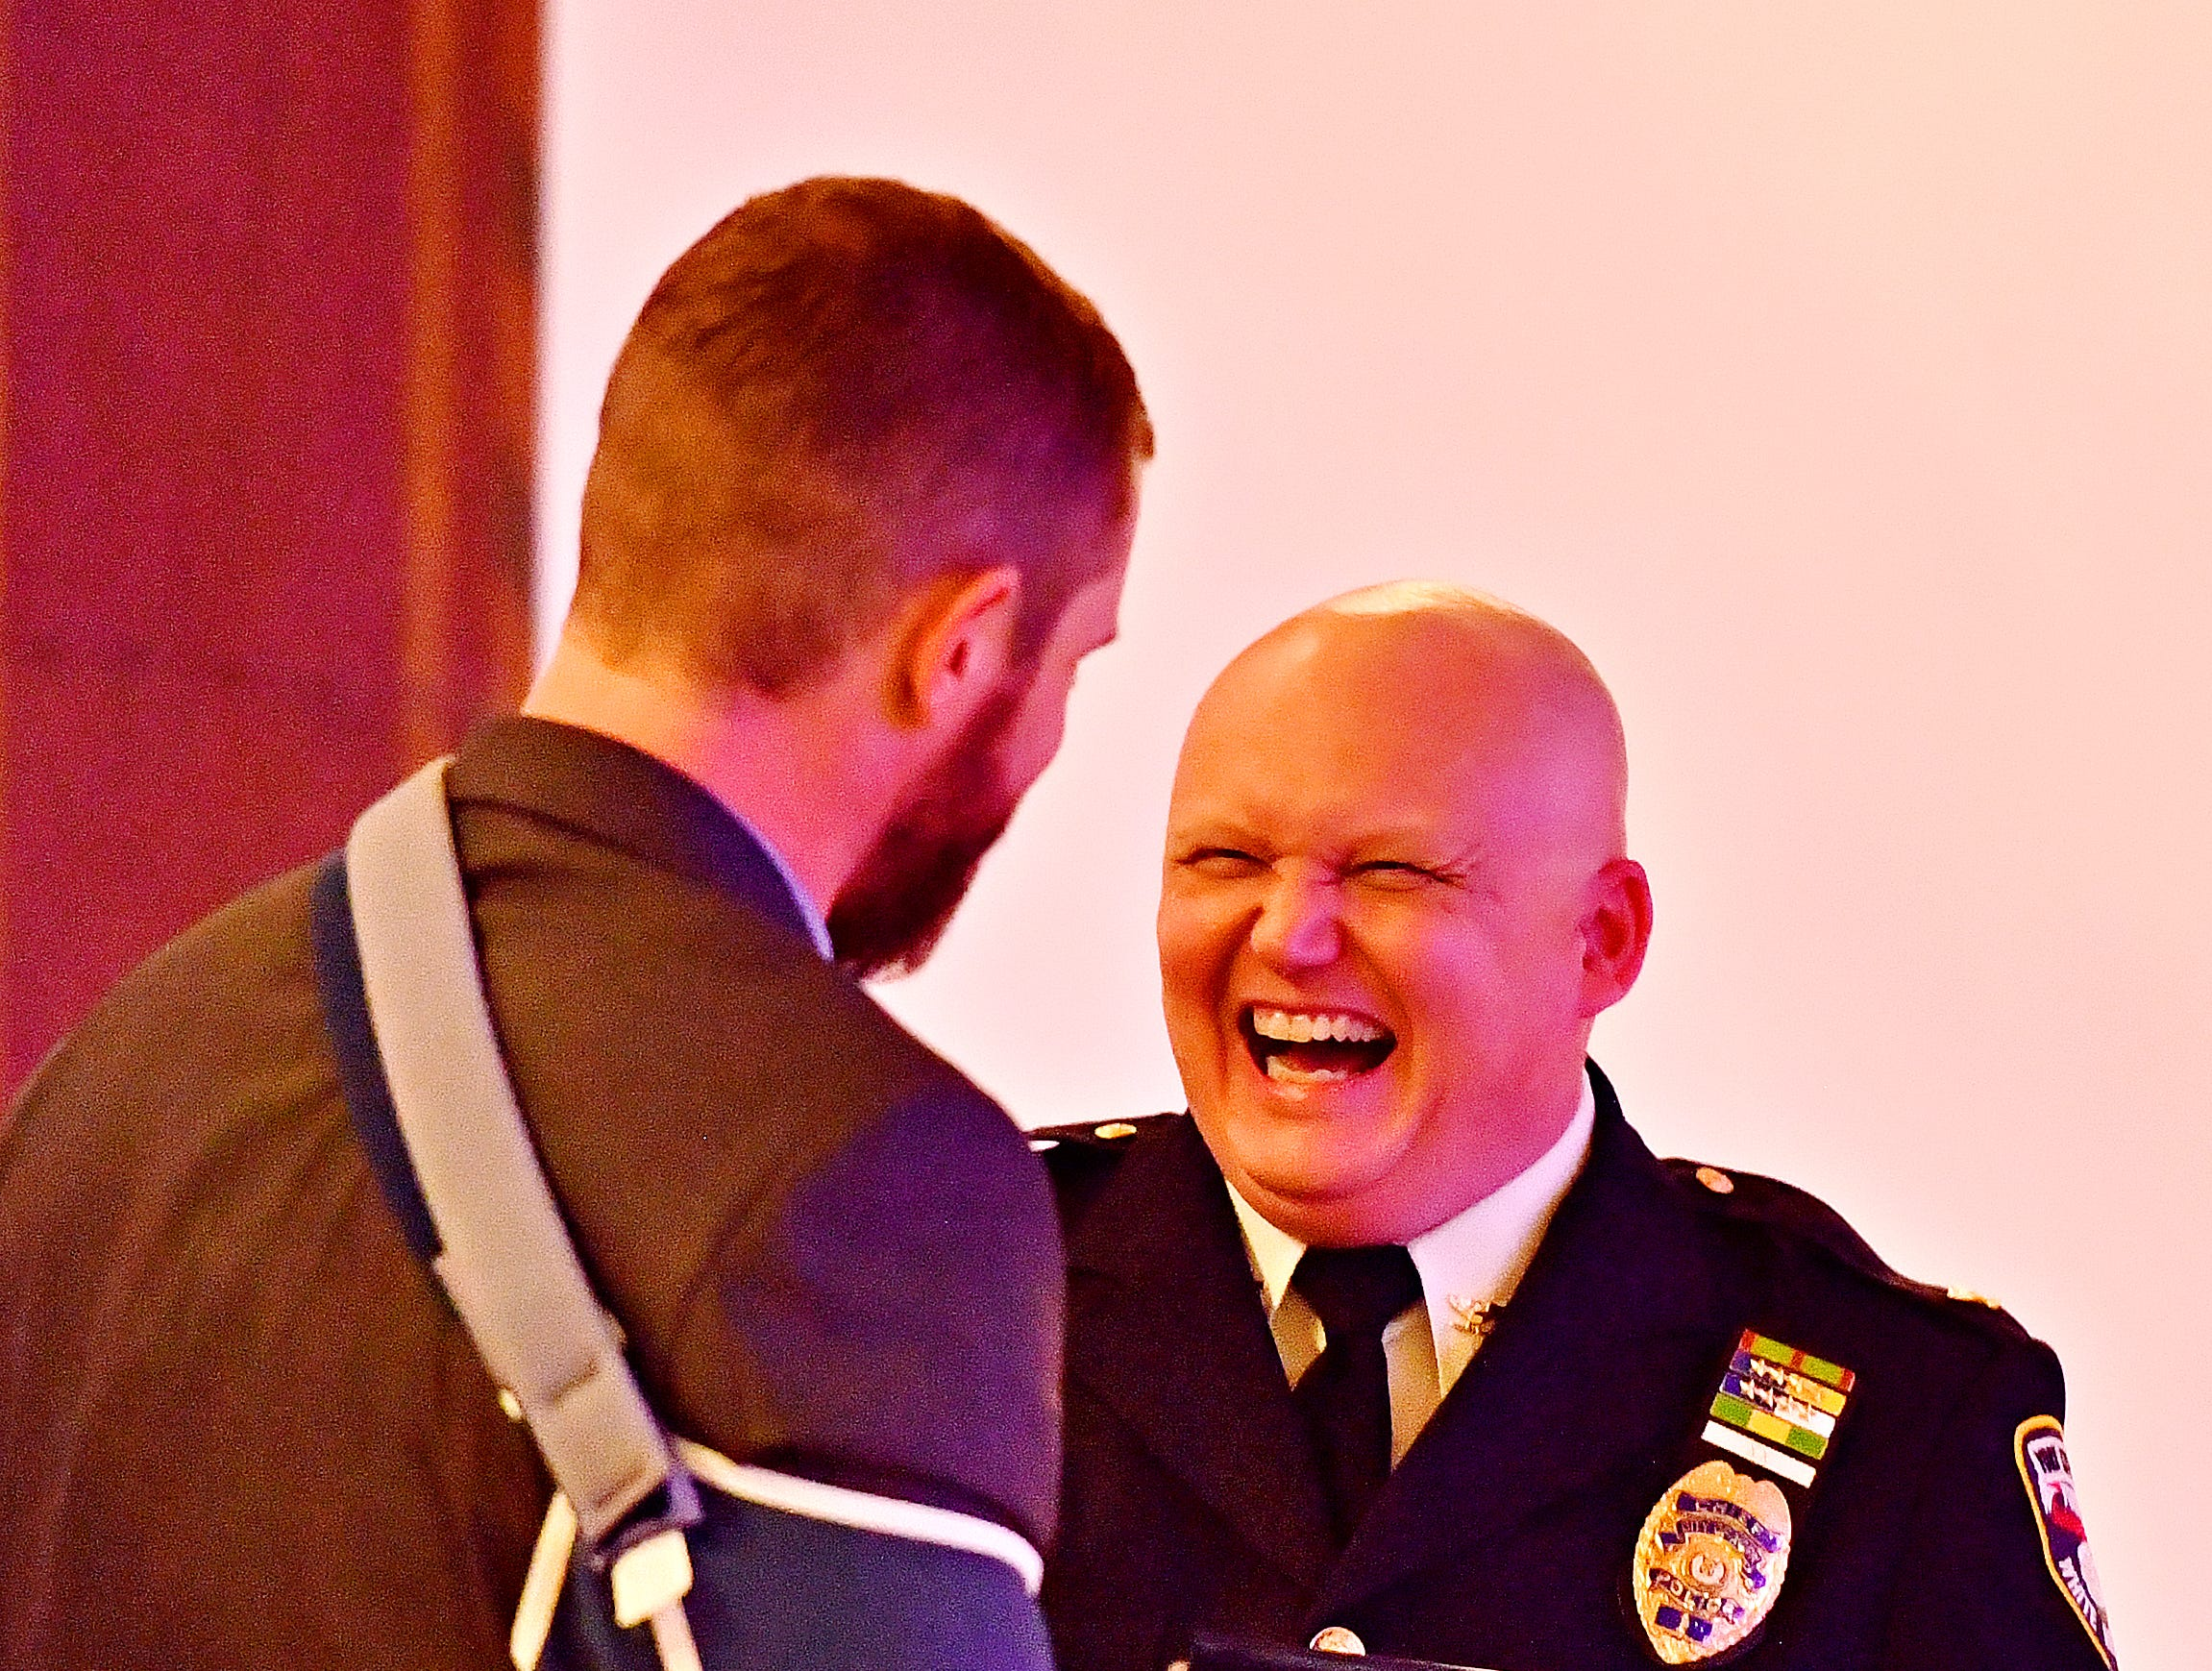 """York City Police Officer Kyle Pitts, left, is awarded the 2018 """"Wound Bar"""" award by York City Police Chief Troy Bankert during the York City Police Departmental Awards Ceremony at Valencia Ballroom in York City, Thursday, May 9, 2019. Dawn J. Sagert photo"""